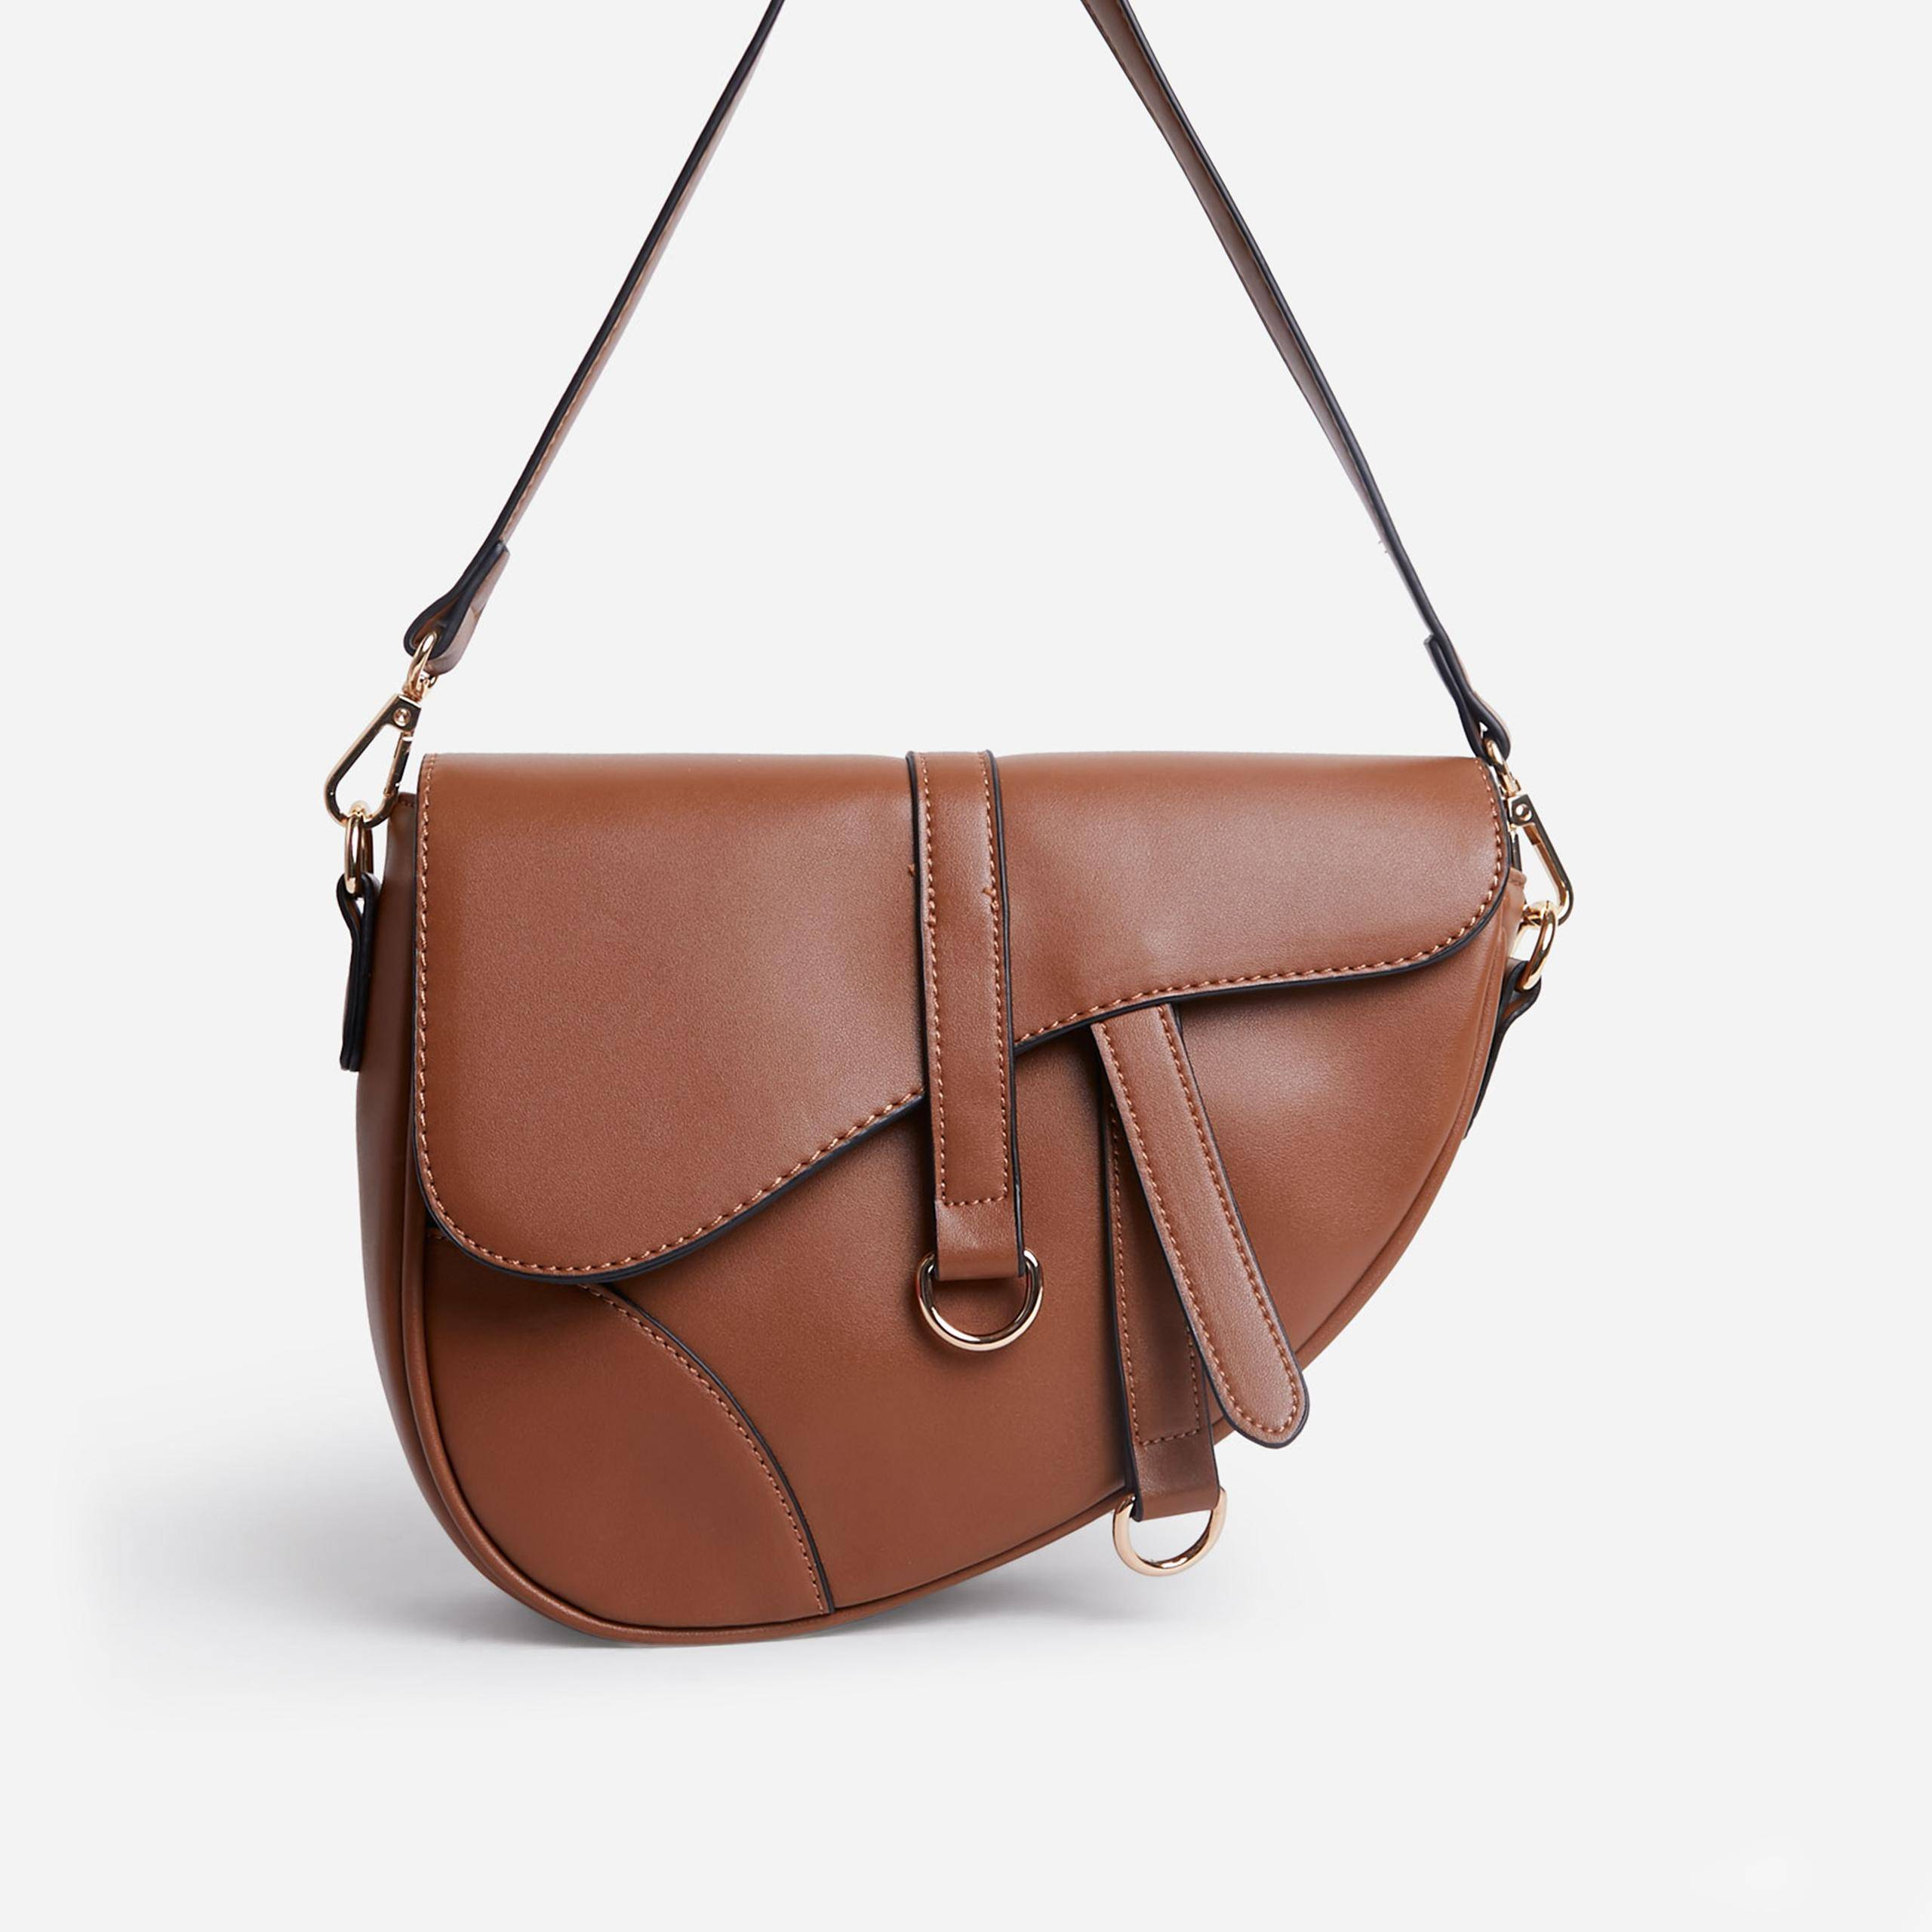 EGO Issy Curved Cross Body Saddle Bag In Tan Brown Faux Leather,, Brown  - female - Size: One Size